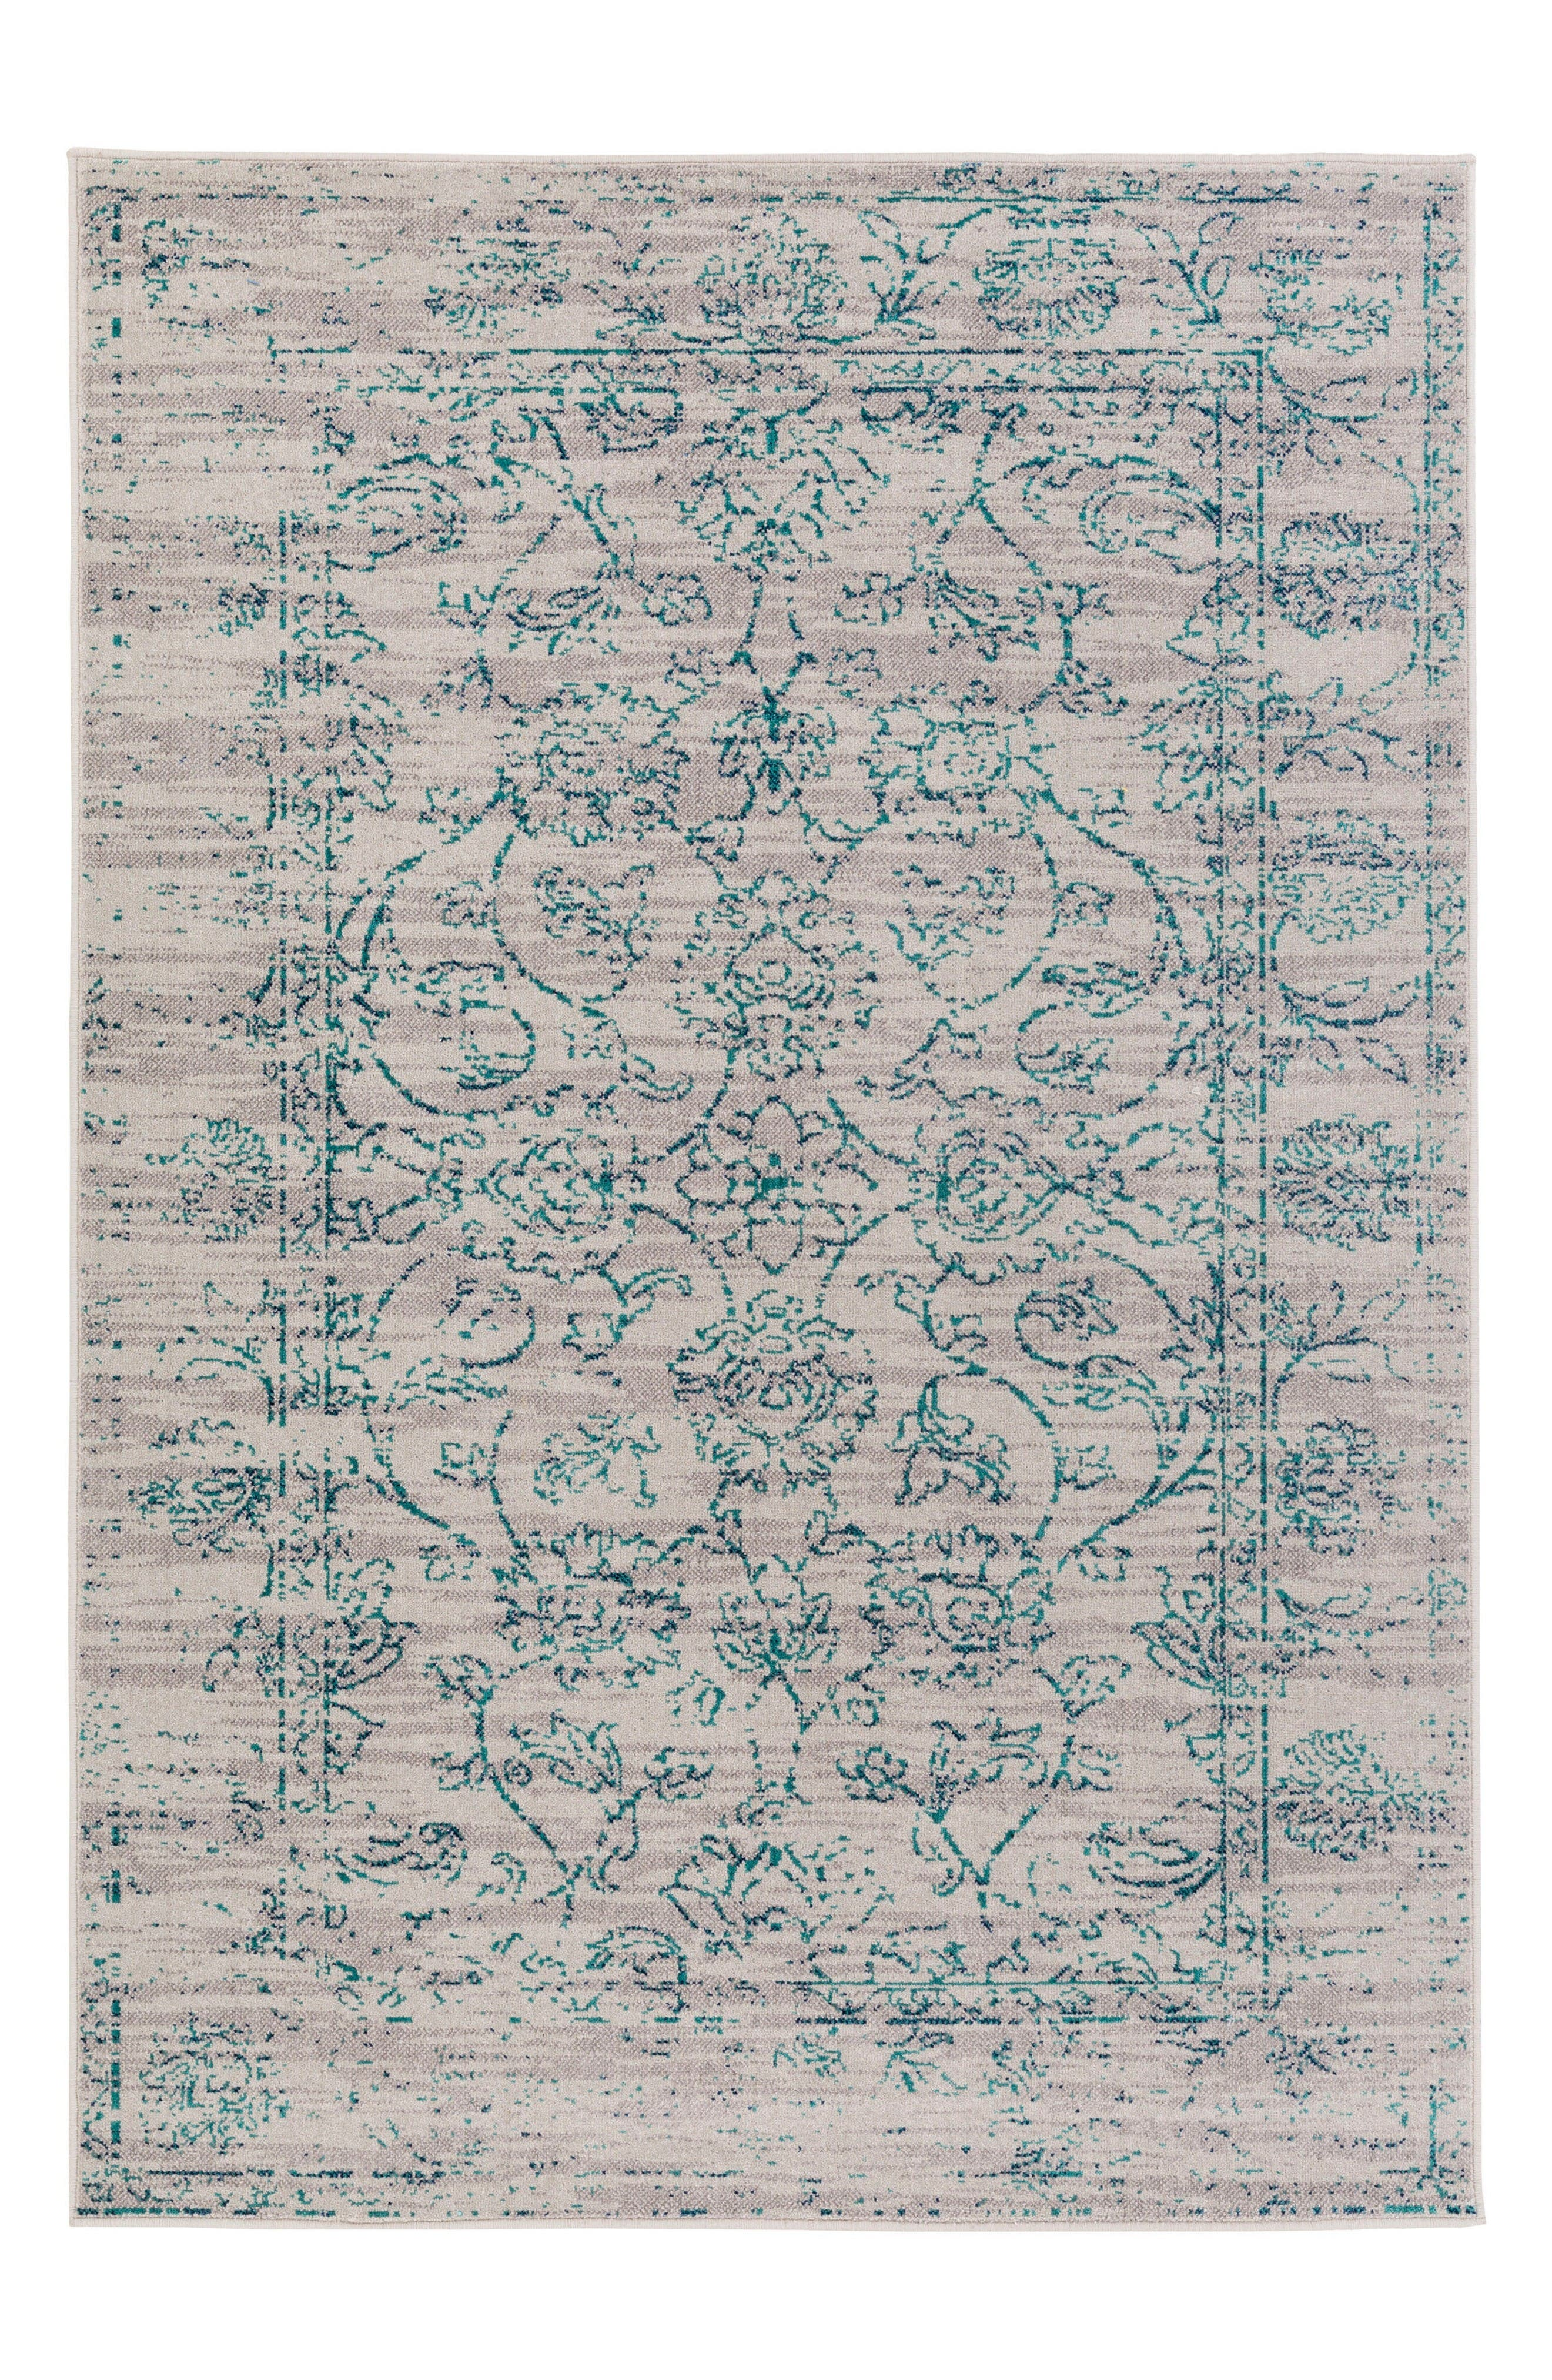 Stretto Classic Rug,                         Main,                         color, Grey/ Teal